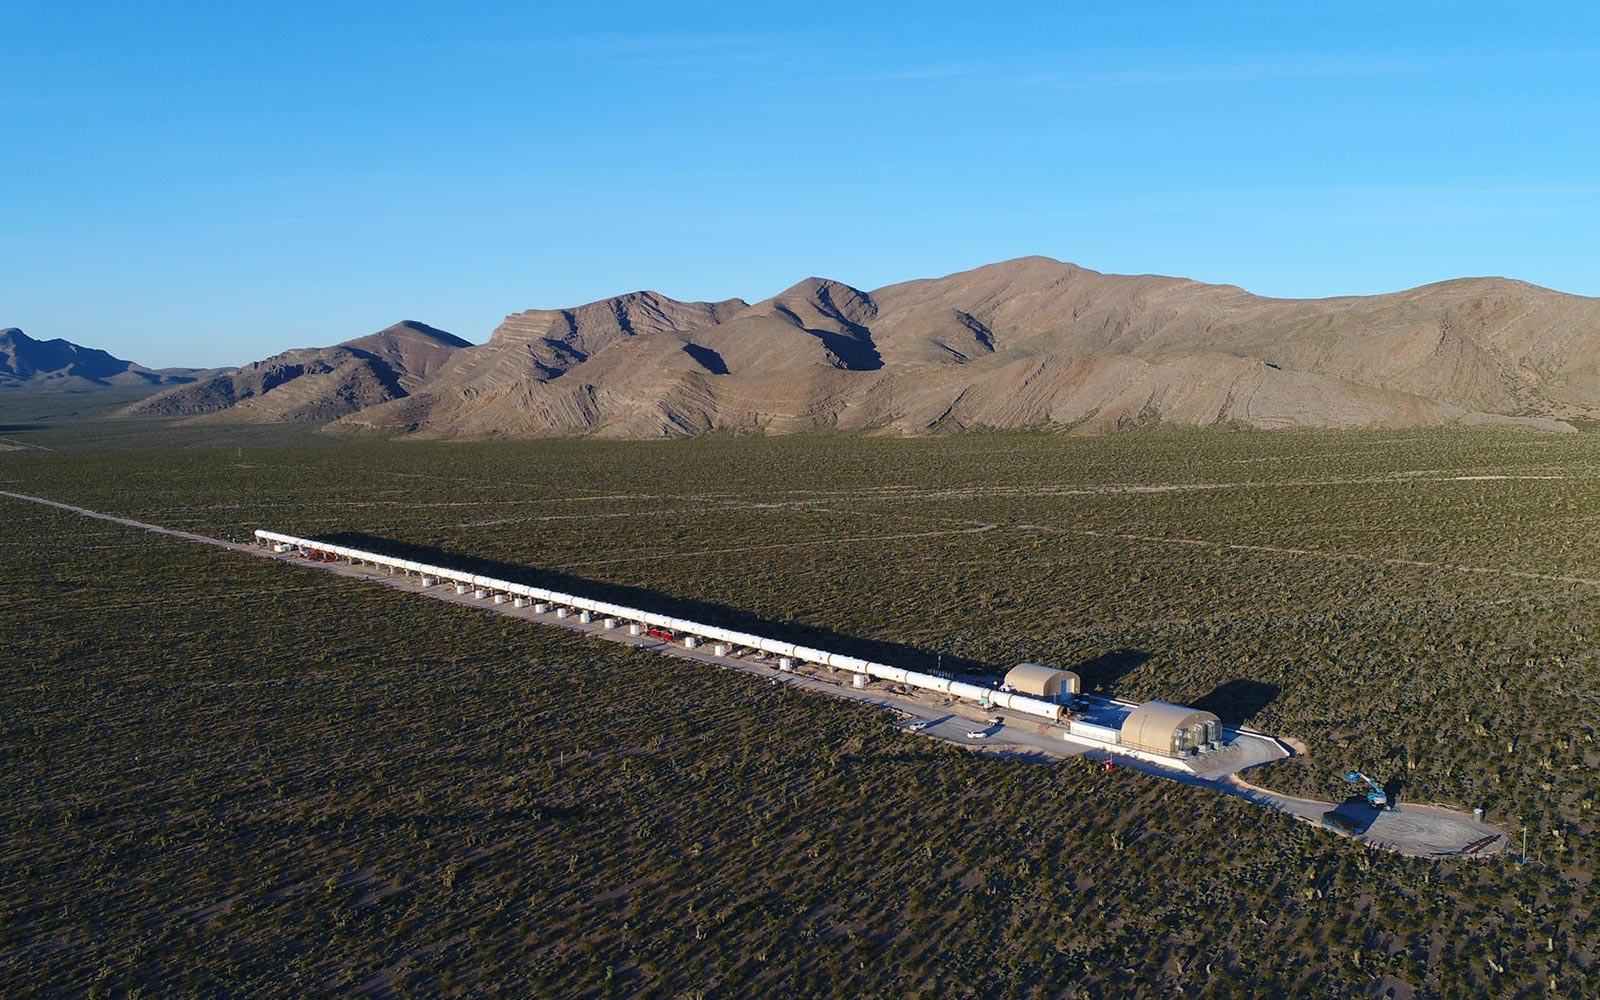 Hyperloop Could Get Passengers From New York City to D.C. in 20 Minutes